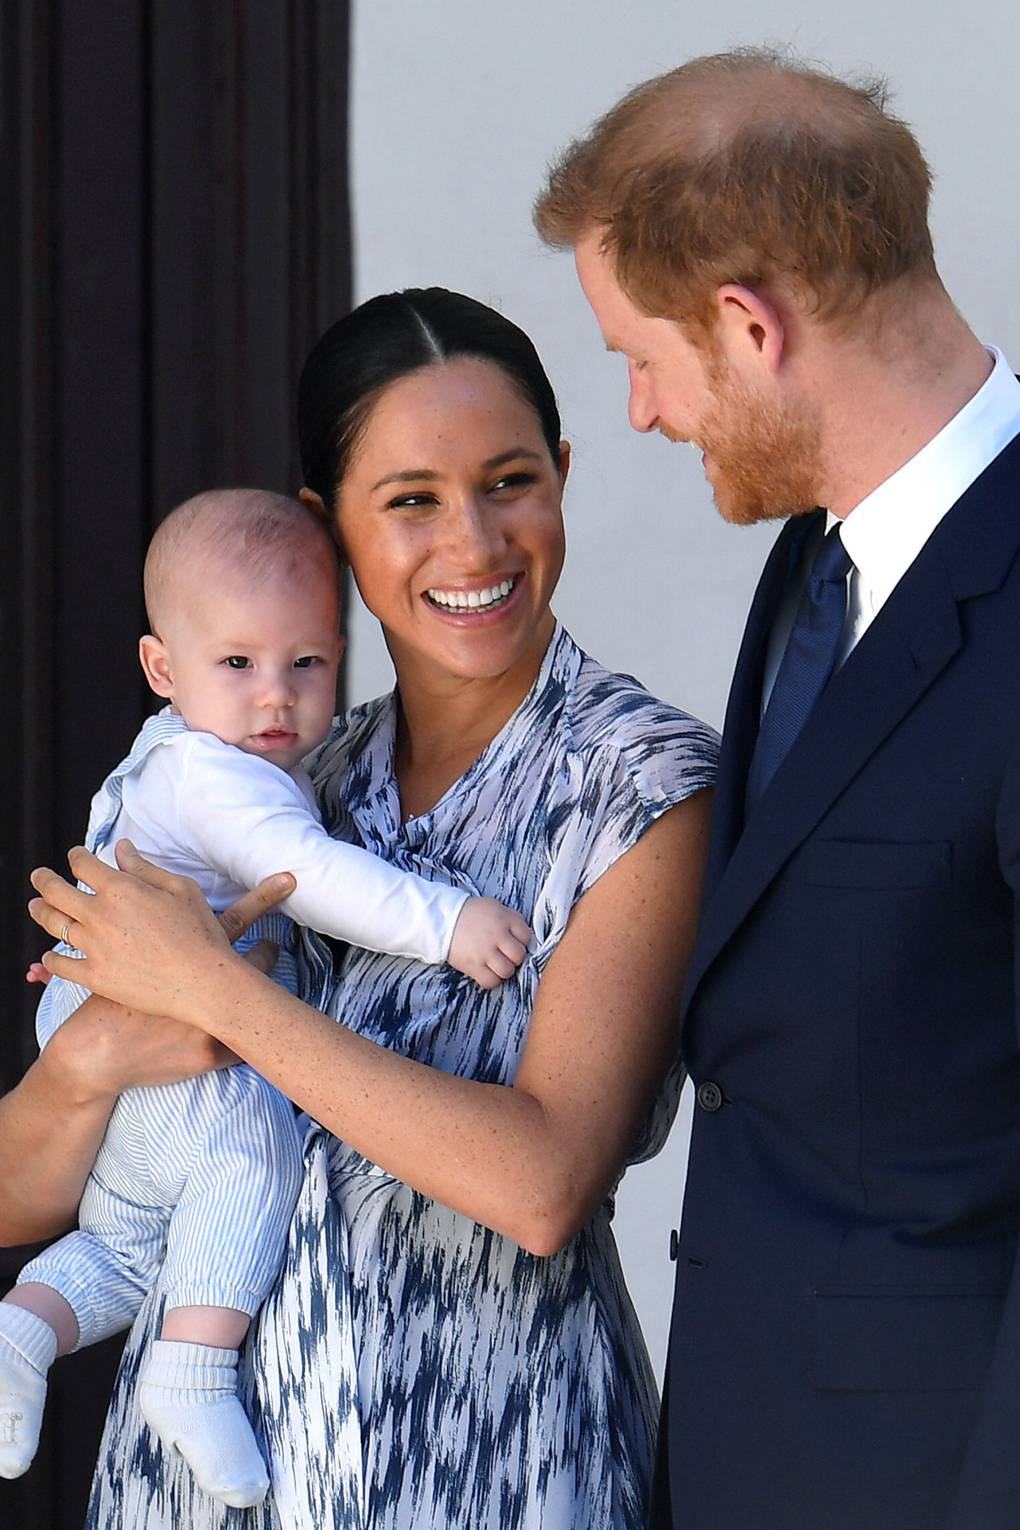 harry and meghan move into home worth more than 14 million in a list neighbourhood of santa barbara tatler harry and meghan move into home worth